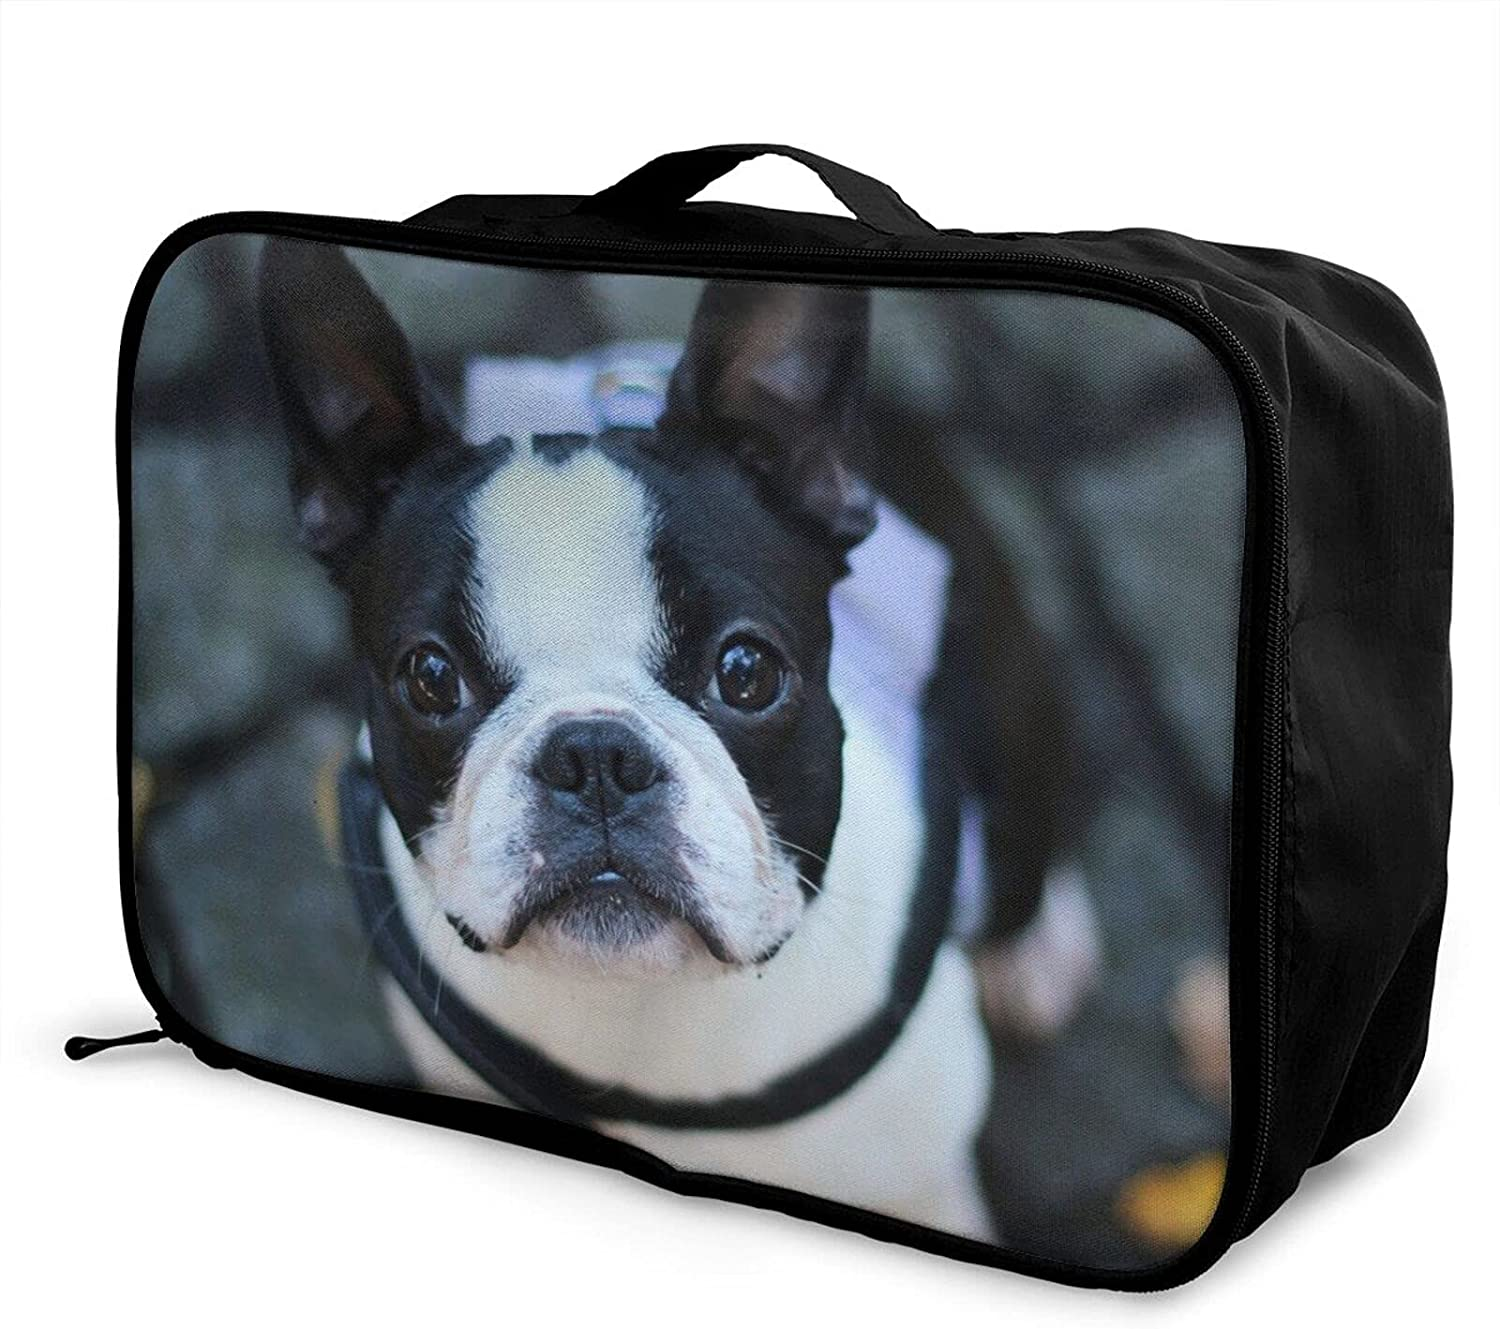 Excellence 55% OFF Foldable Travel Bag Tote French Carry-On D Cute Bulldog Dog